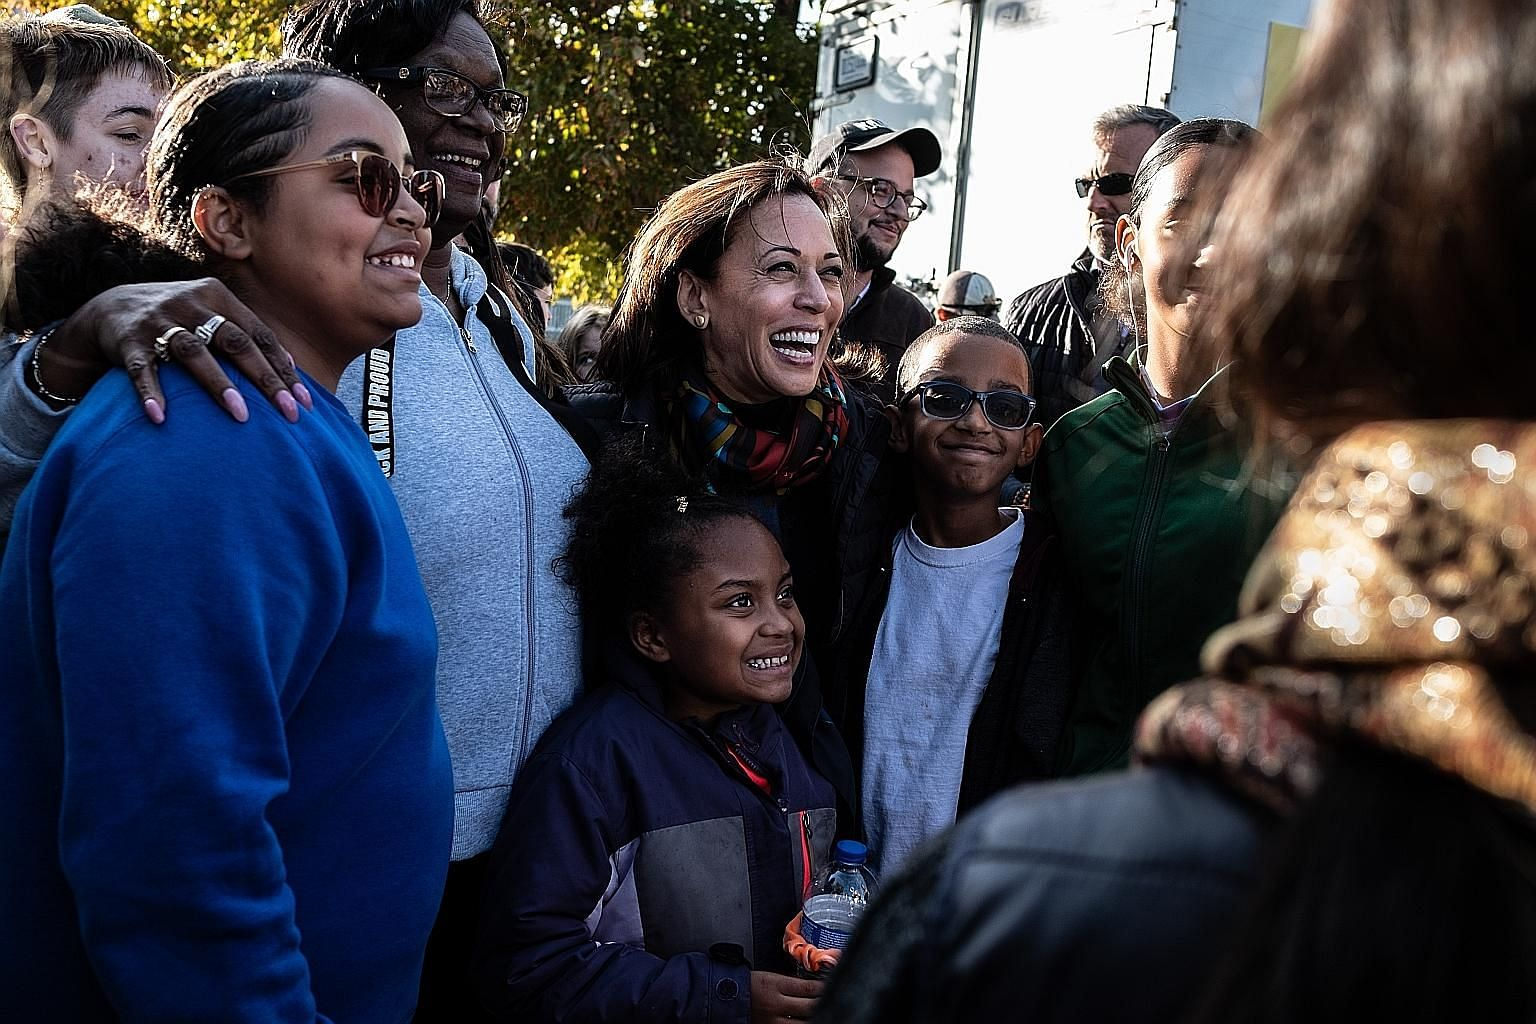 Senator Kamala Harris with supporters of her presidential campaign in Iowa last year. The daughter of Indian and Jamaican immigrants, Ms Harris has been a leading voice in her party on tackling anti-black racism. PHOTO: NYTIMES